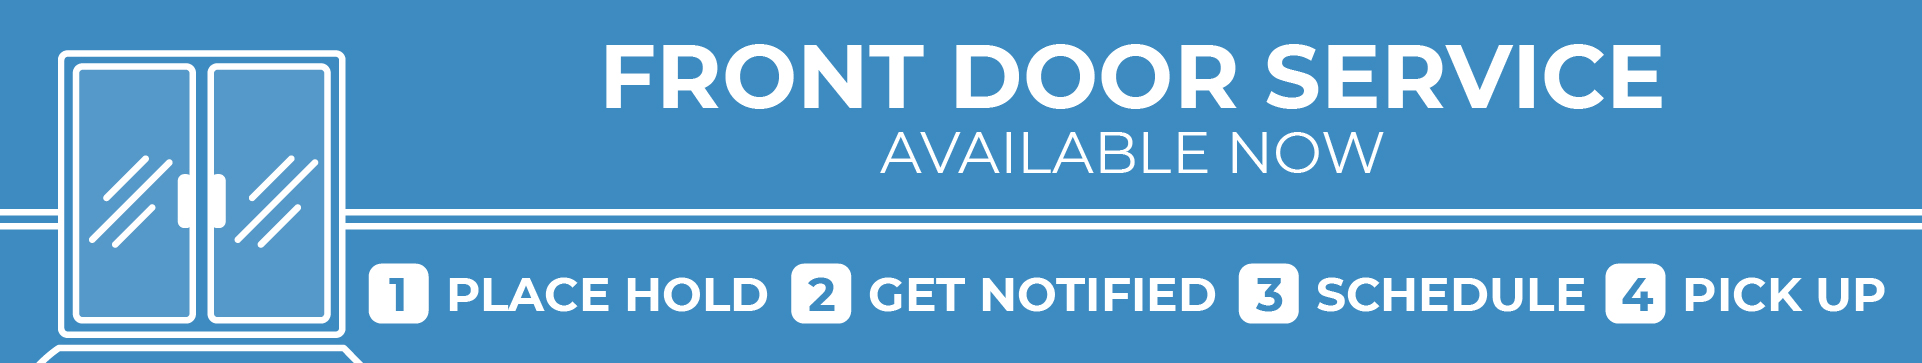 Front Door Service available now: place hold, get notified, schedule, pick up